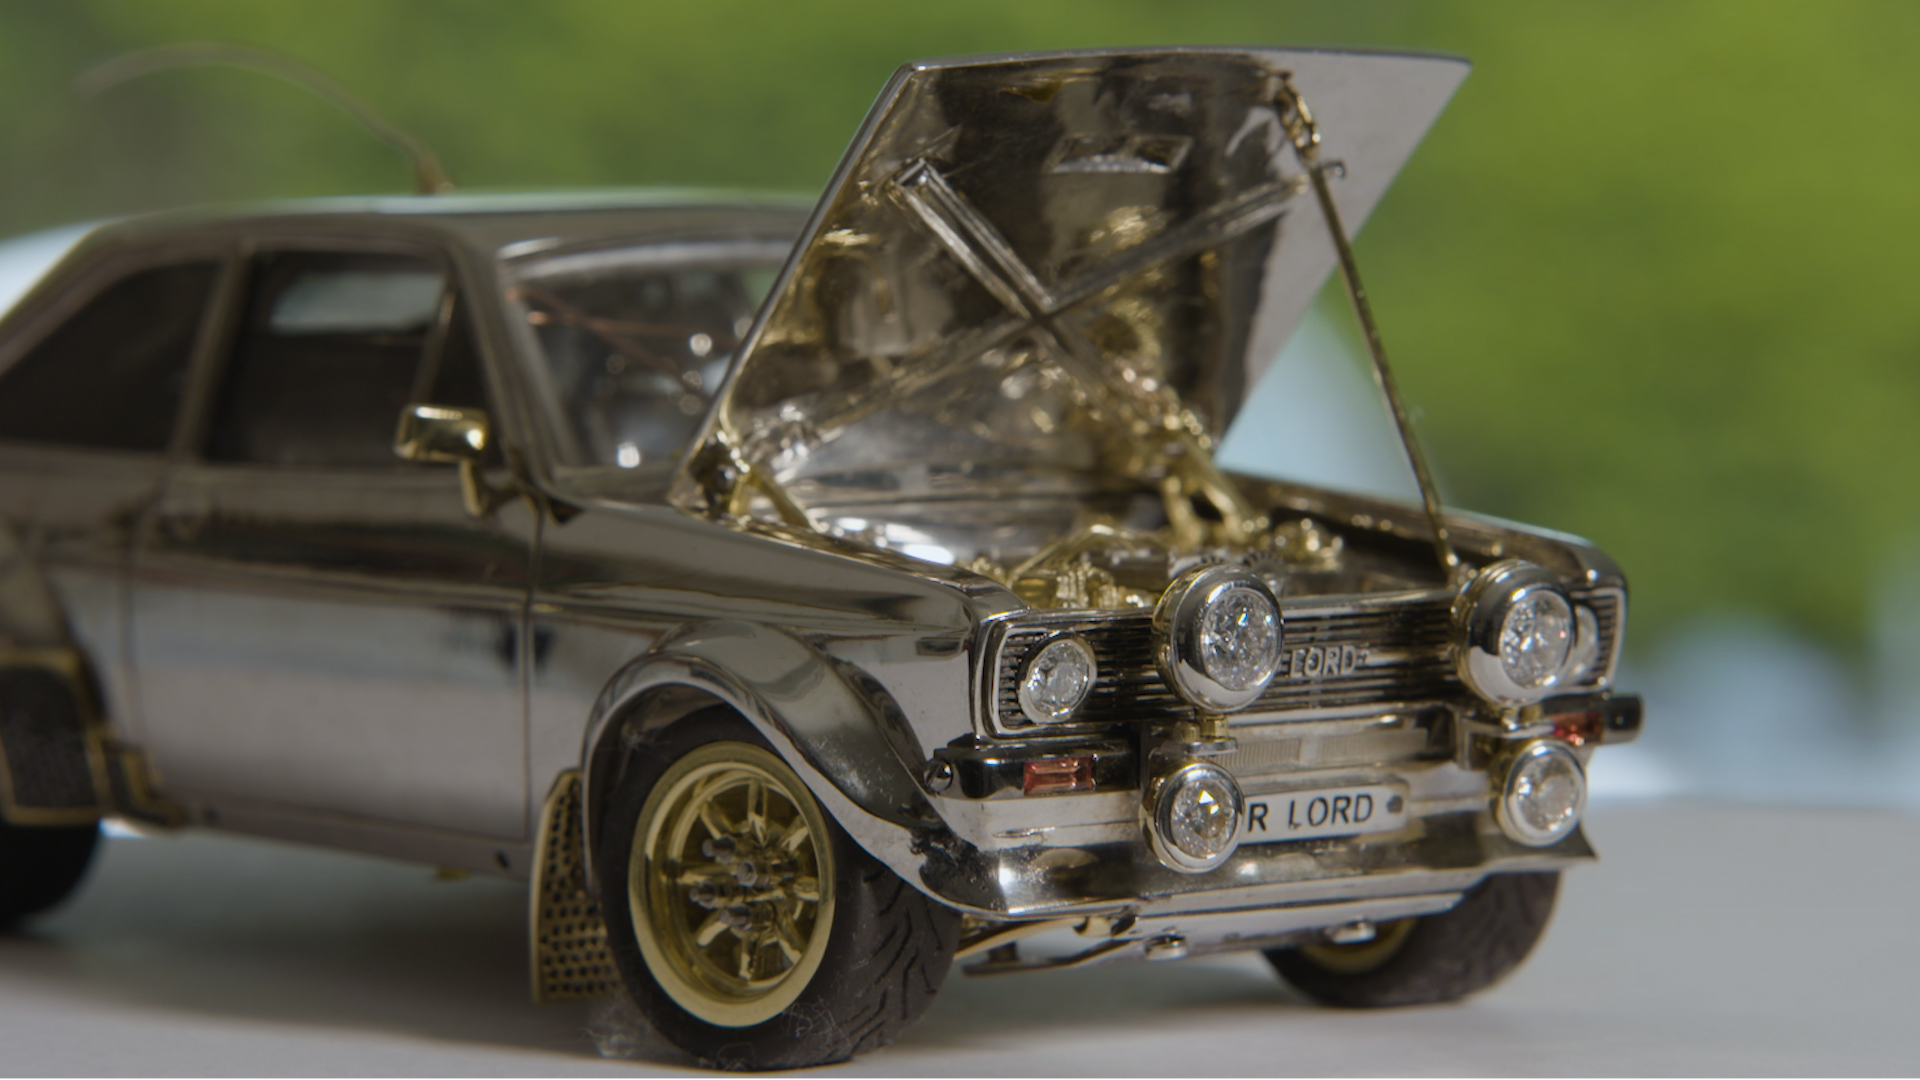 Tiny Classic Ford Escort Made of Gold, Diamonds and Silver Expec